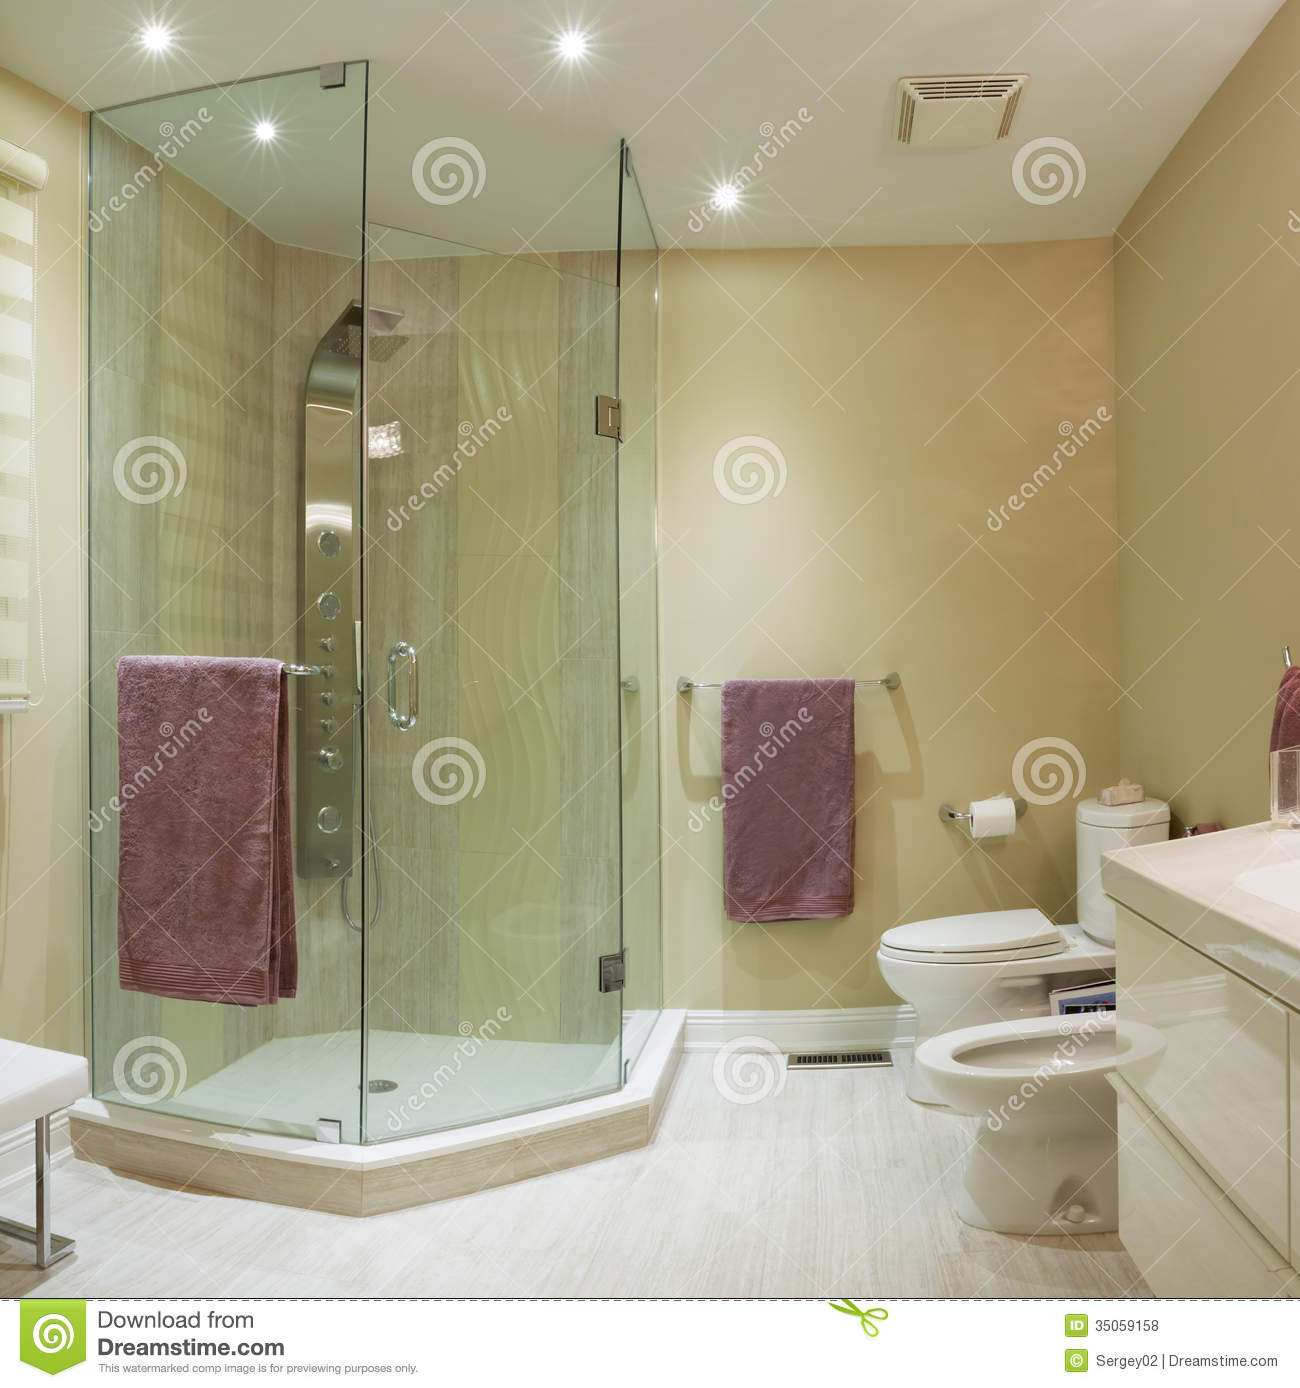 Interior design royalty free stock photos image 35059158 for Bathroom interior design kerala